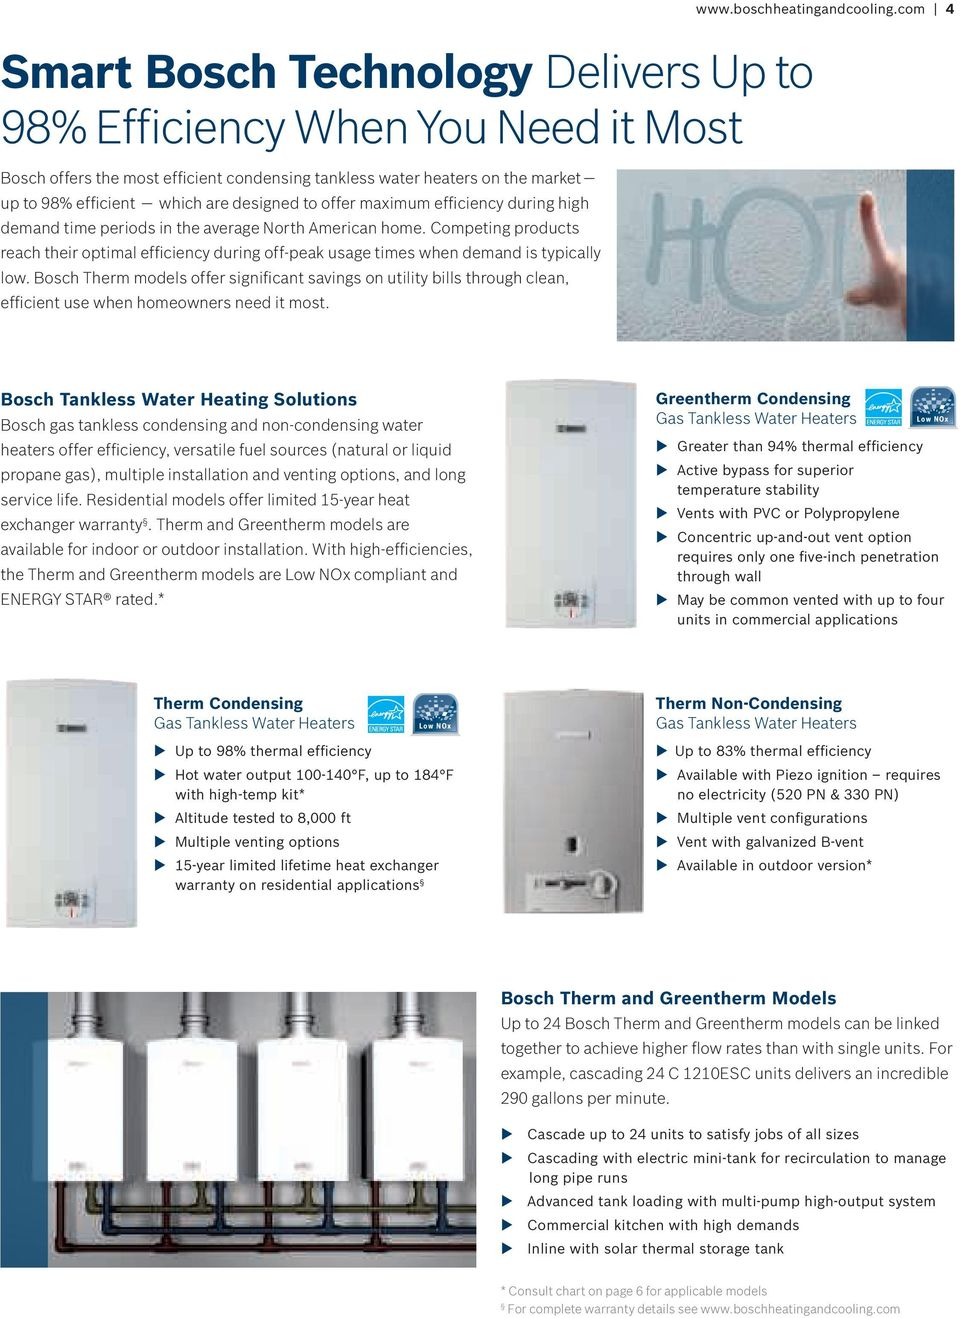 Tankless Water Heating Solutions Residential And Commercial Diagram Of An Active Pumped Solar System To Offer Maximum Efficiency During High Demand Time Periods In The Average North American Home 6 5